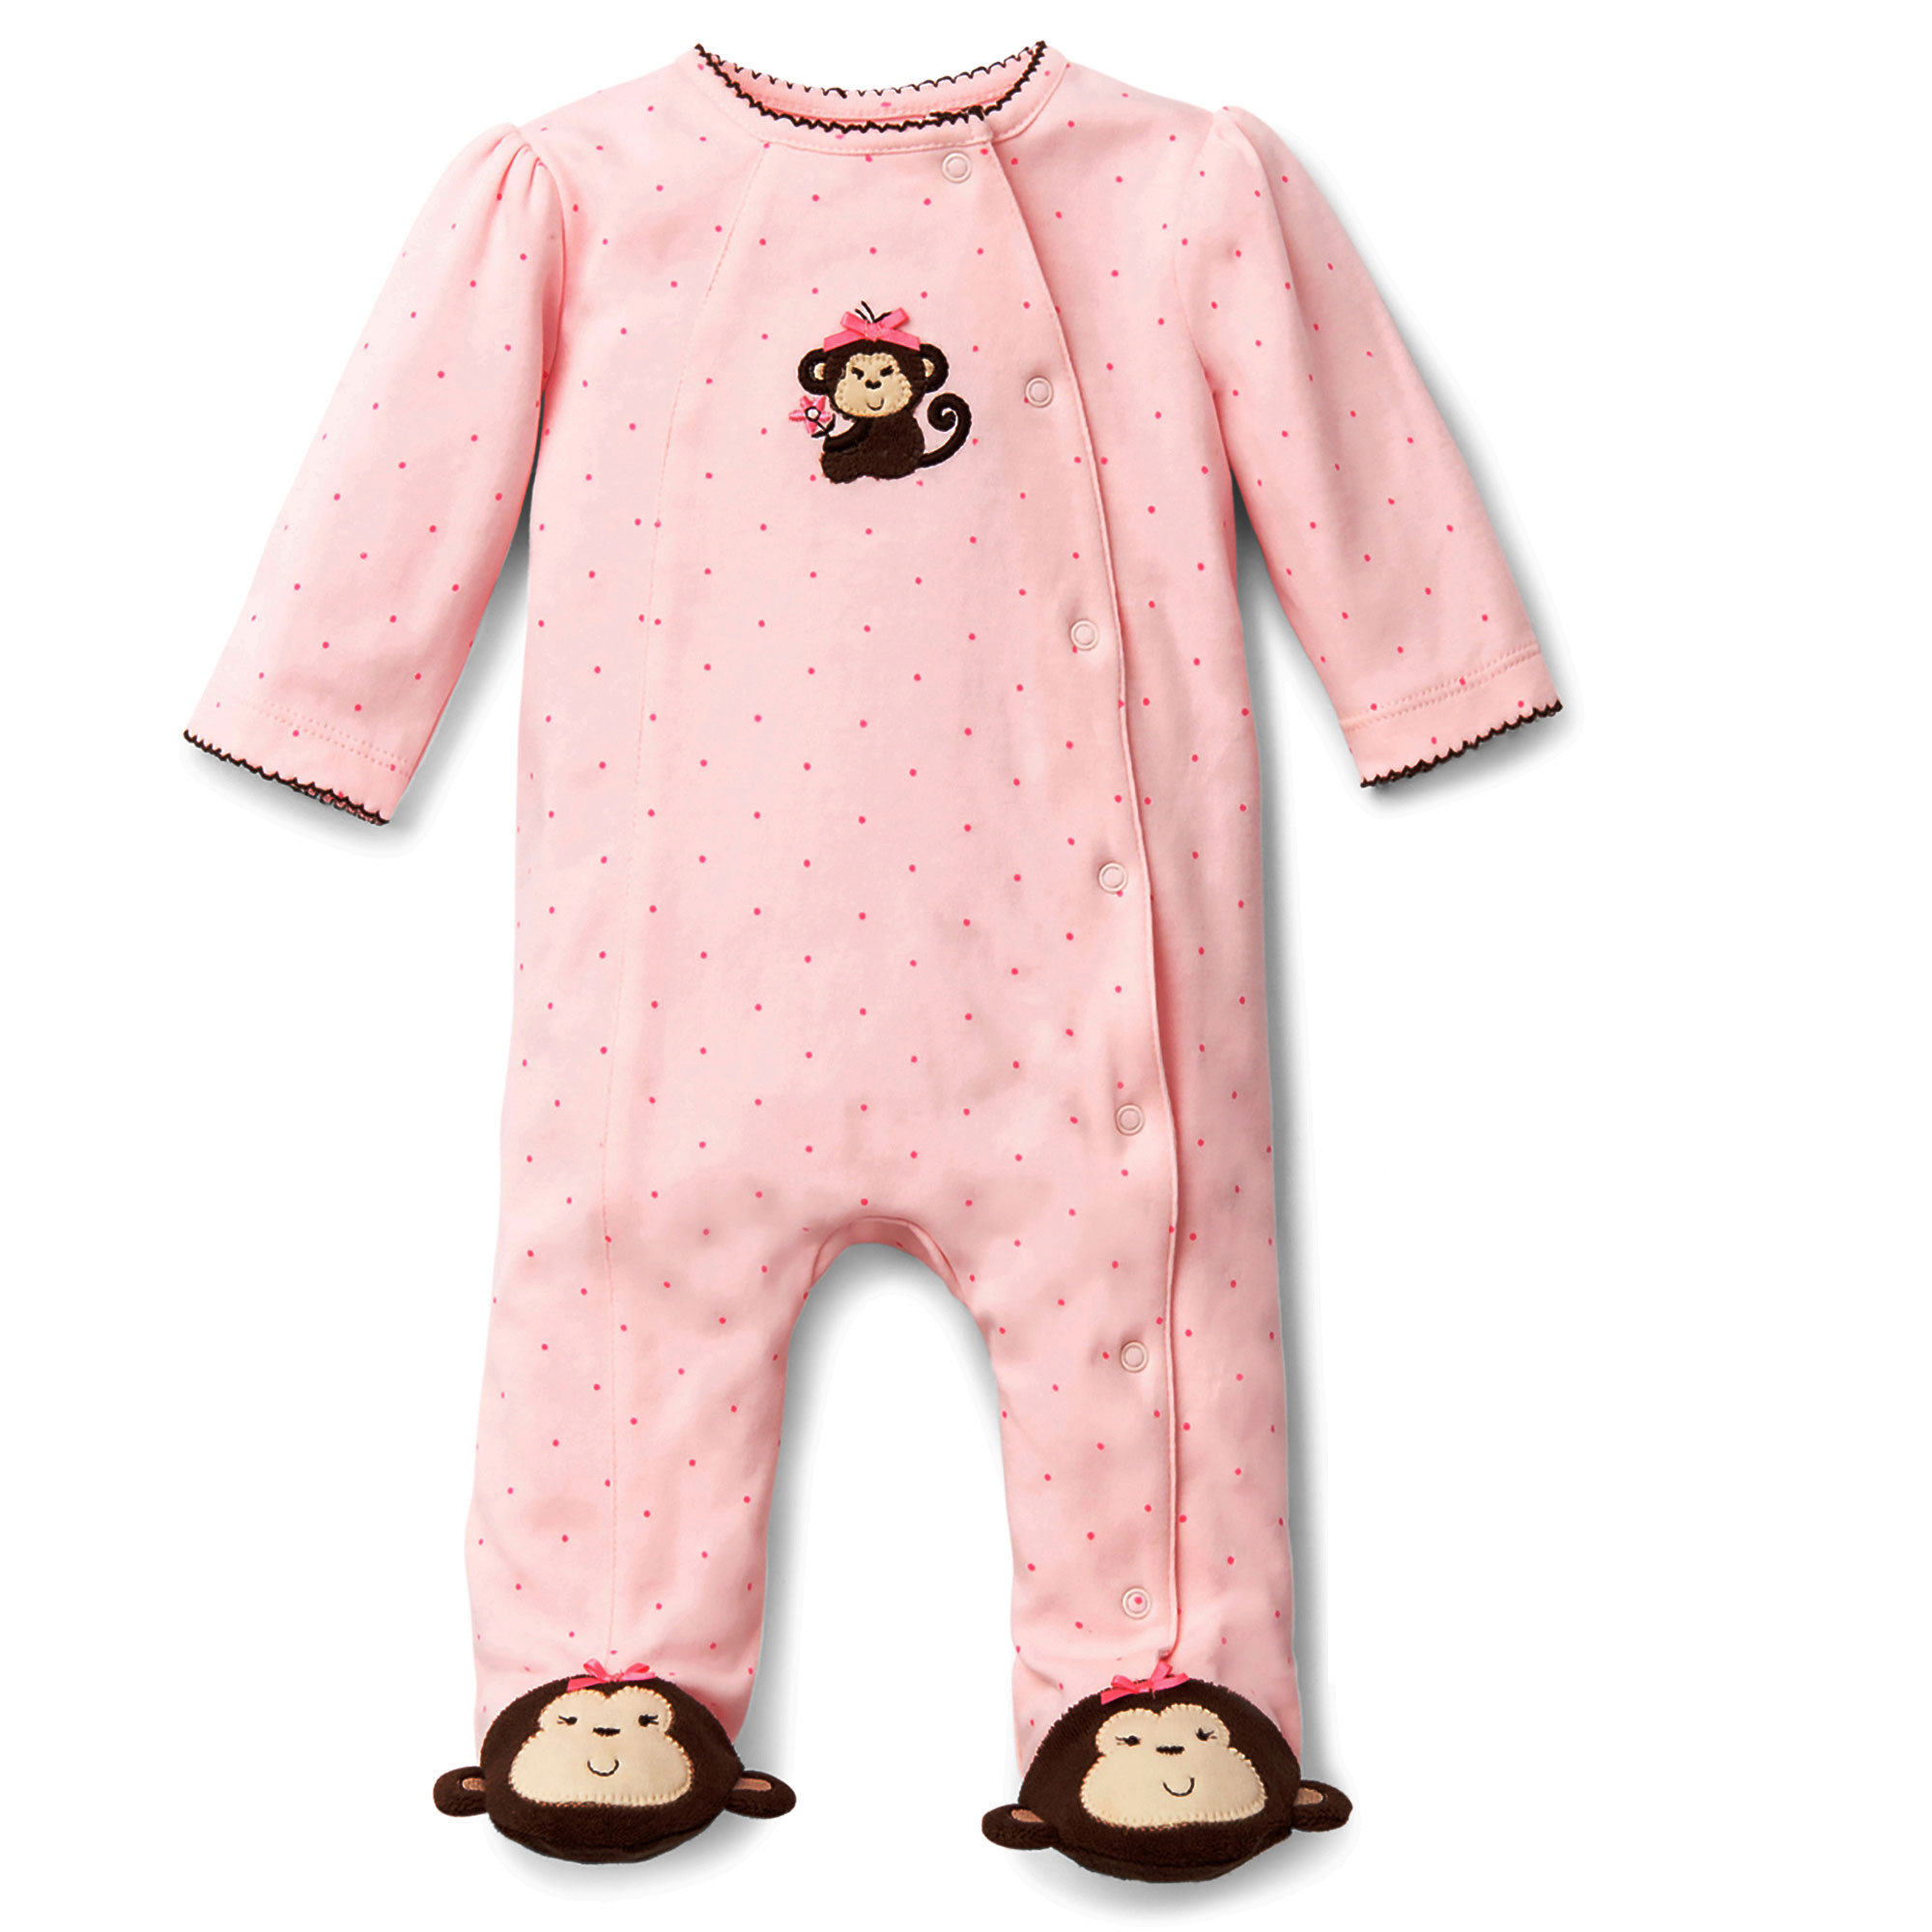 And brown sweet monkey snap front footie pajamas for baby girls sleep